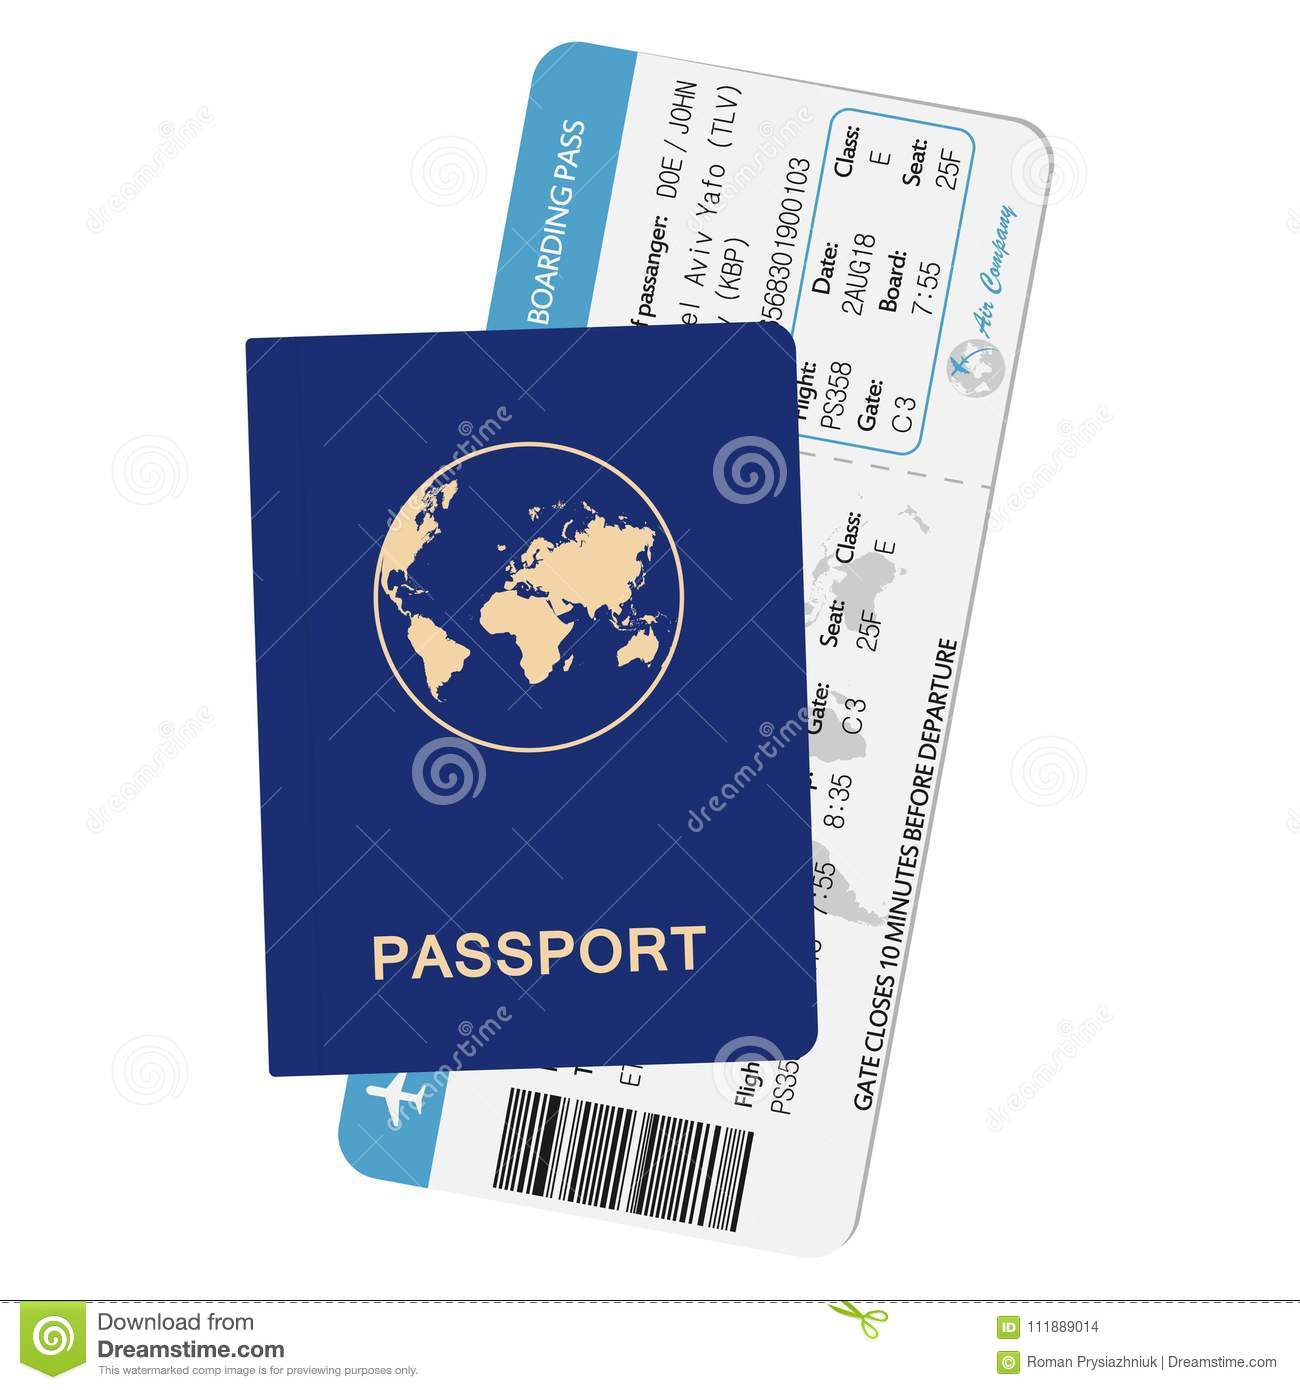 Passport and airline boarding pass. ID document with airplane ticket. Travel concept illustration.